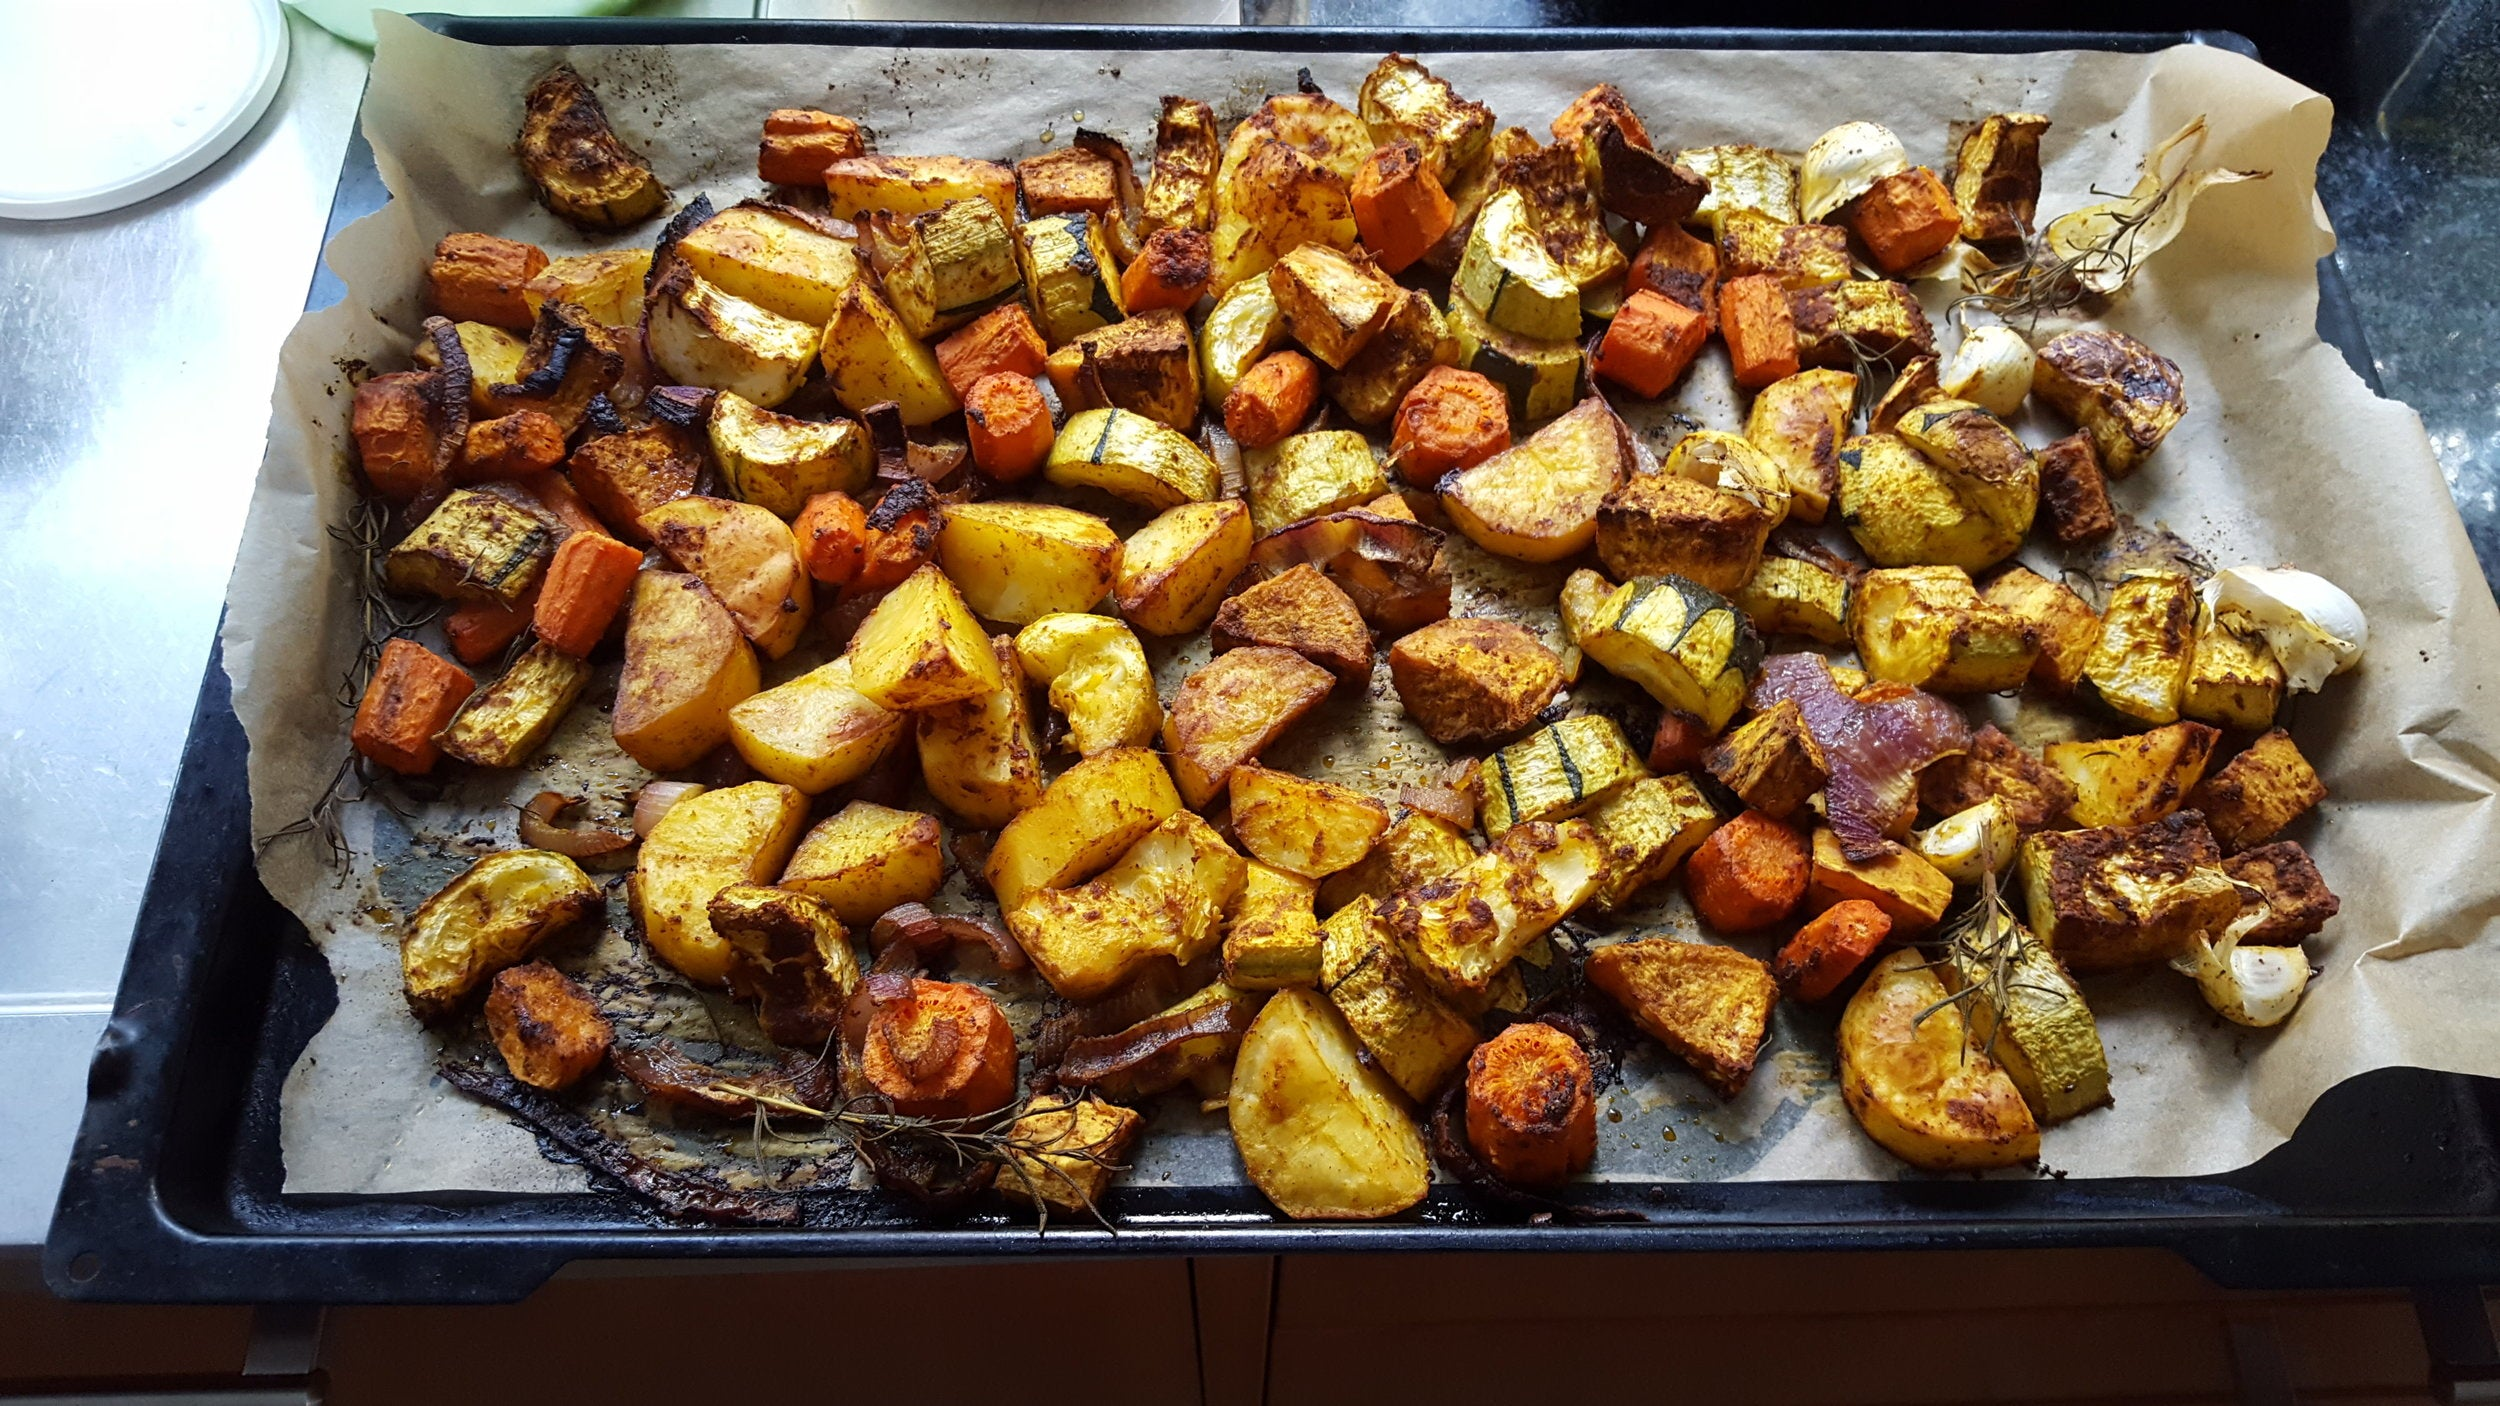 Roasted vegetables with Ayala's Magic Spice, after baking